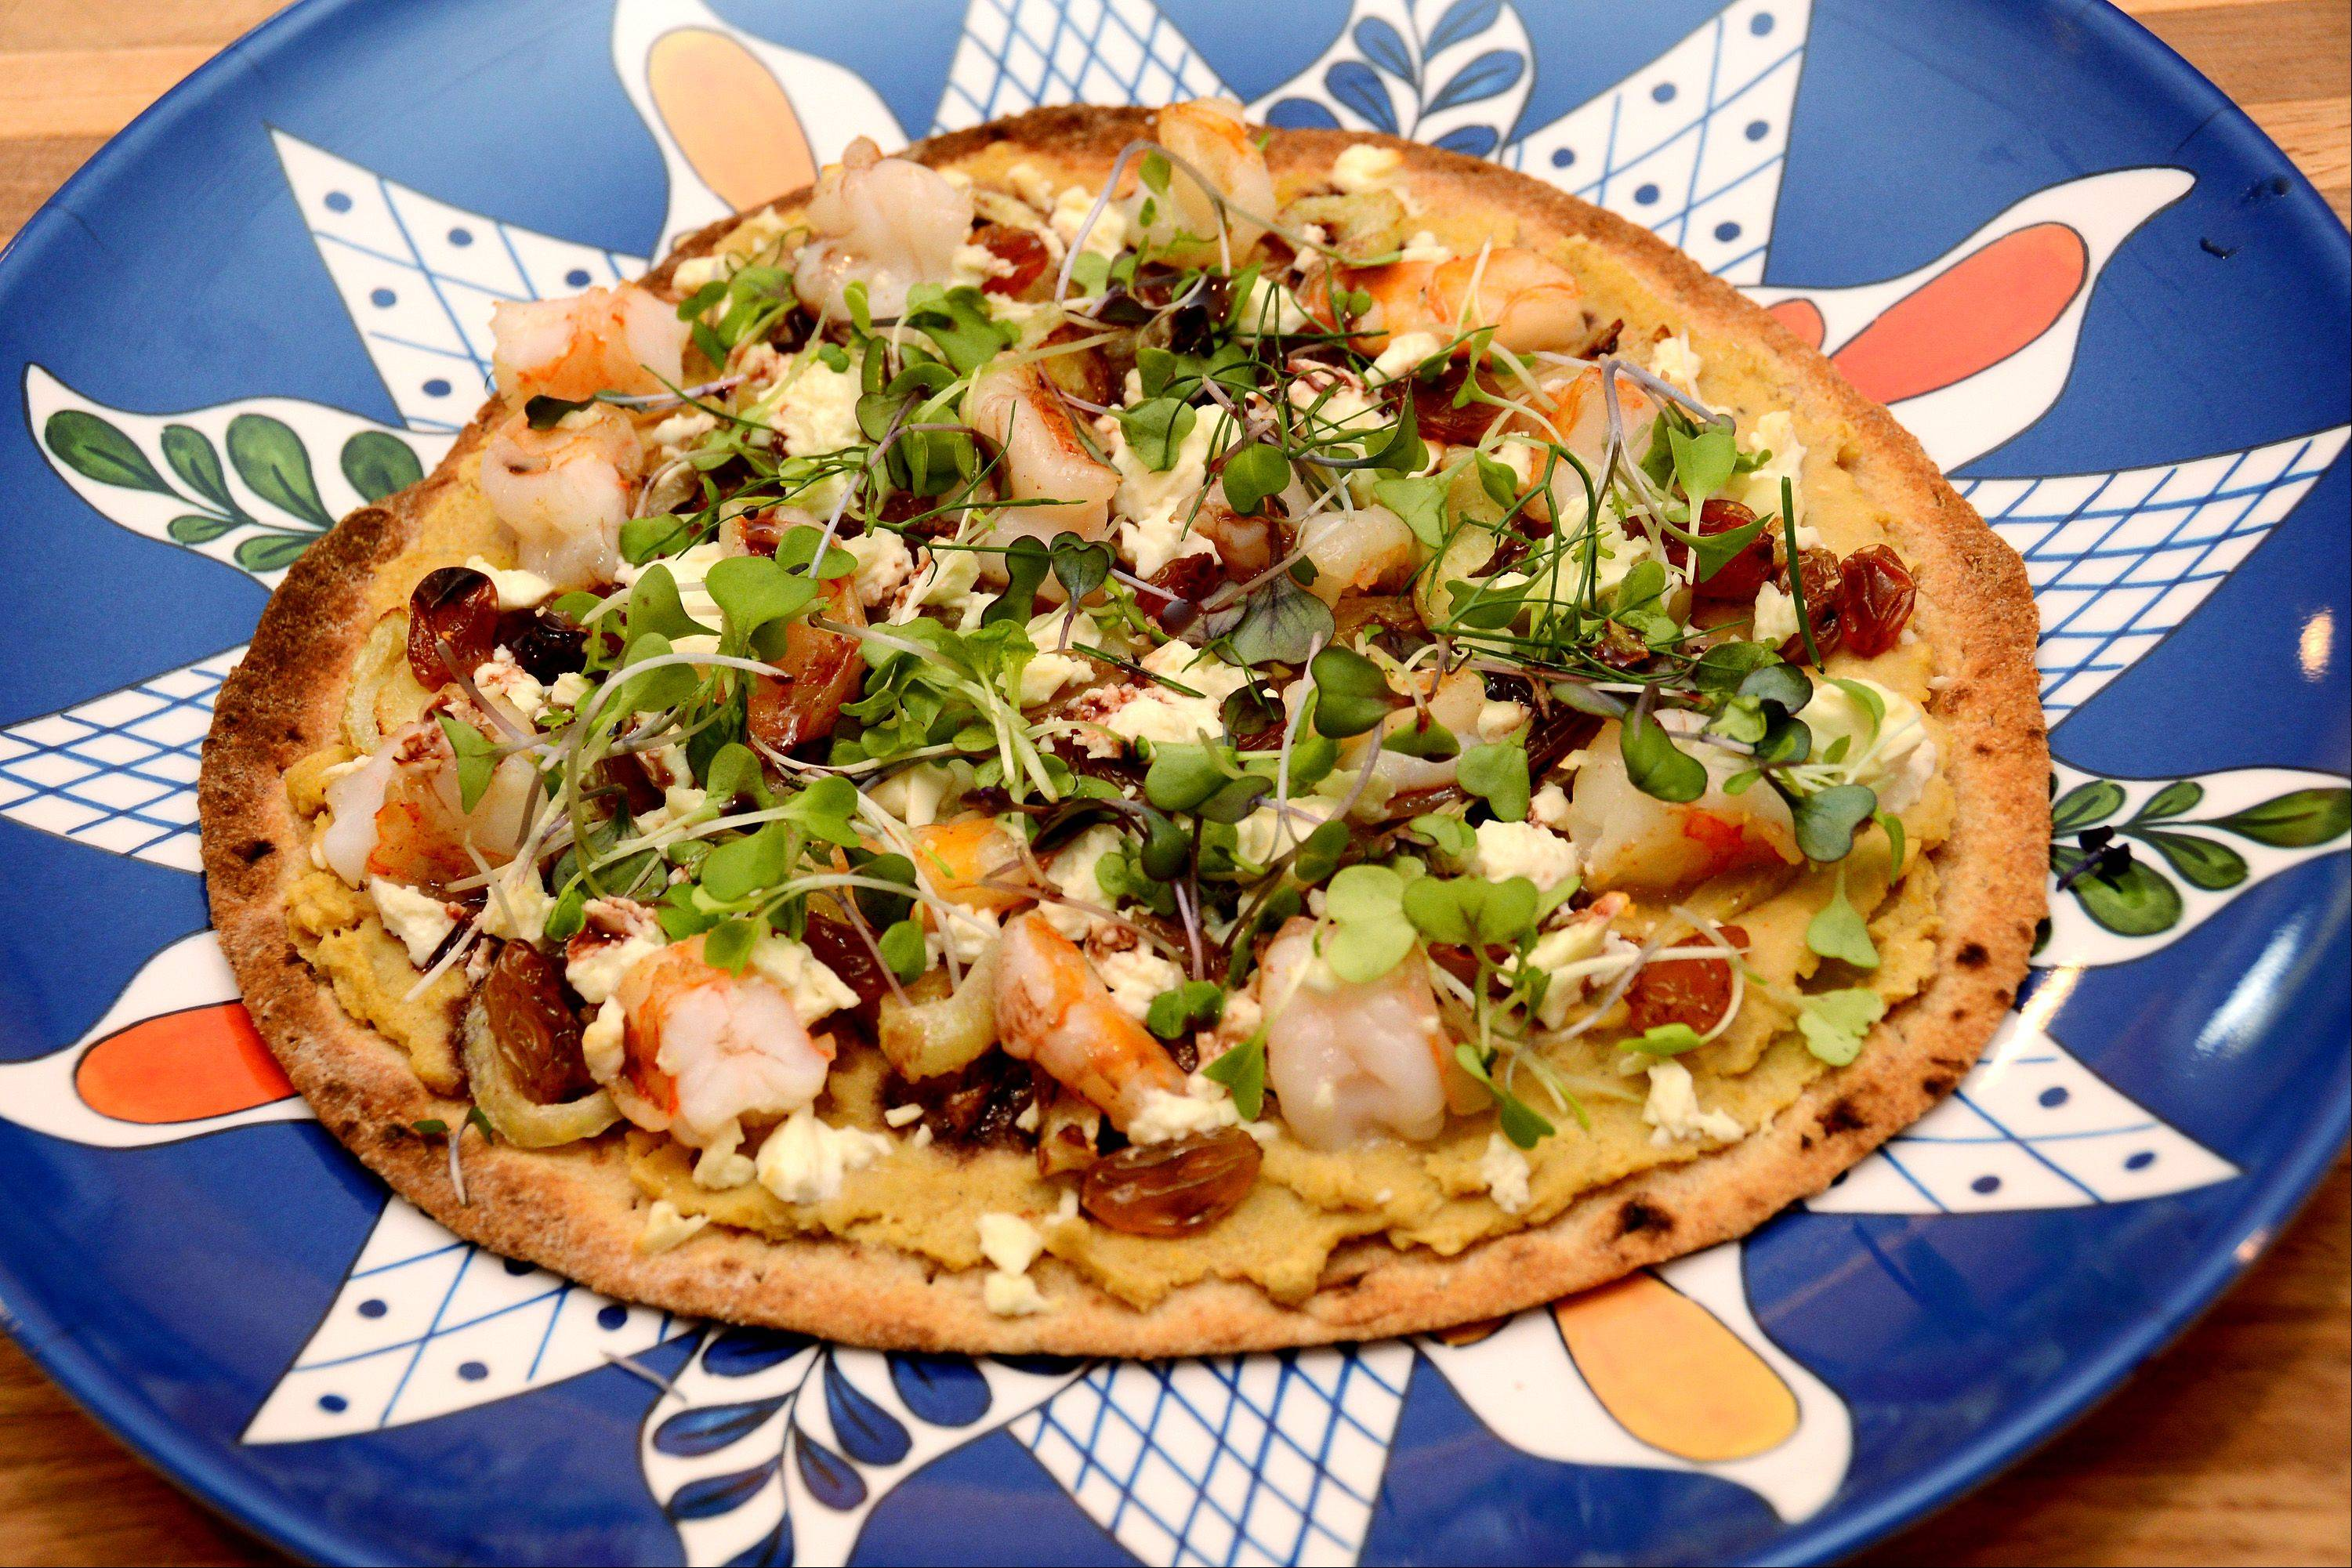 Lori Motyka, from West Chicago, created a flatbread pizza with sardines, chick peas, fennel and golden raisins.